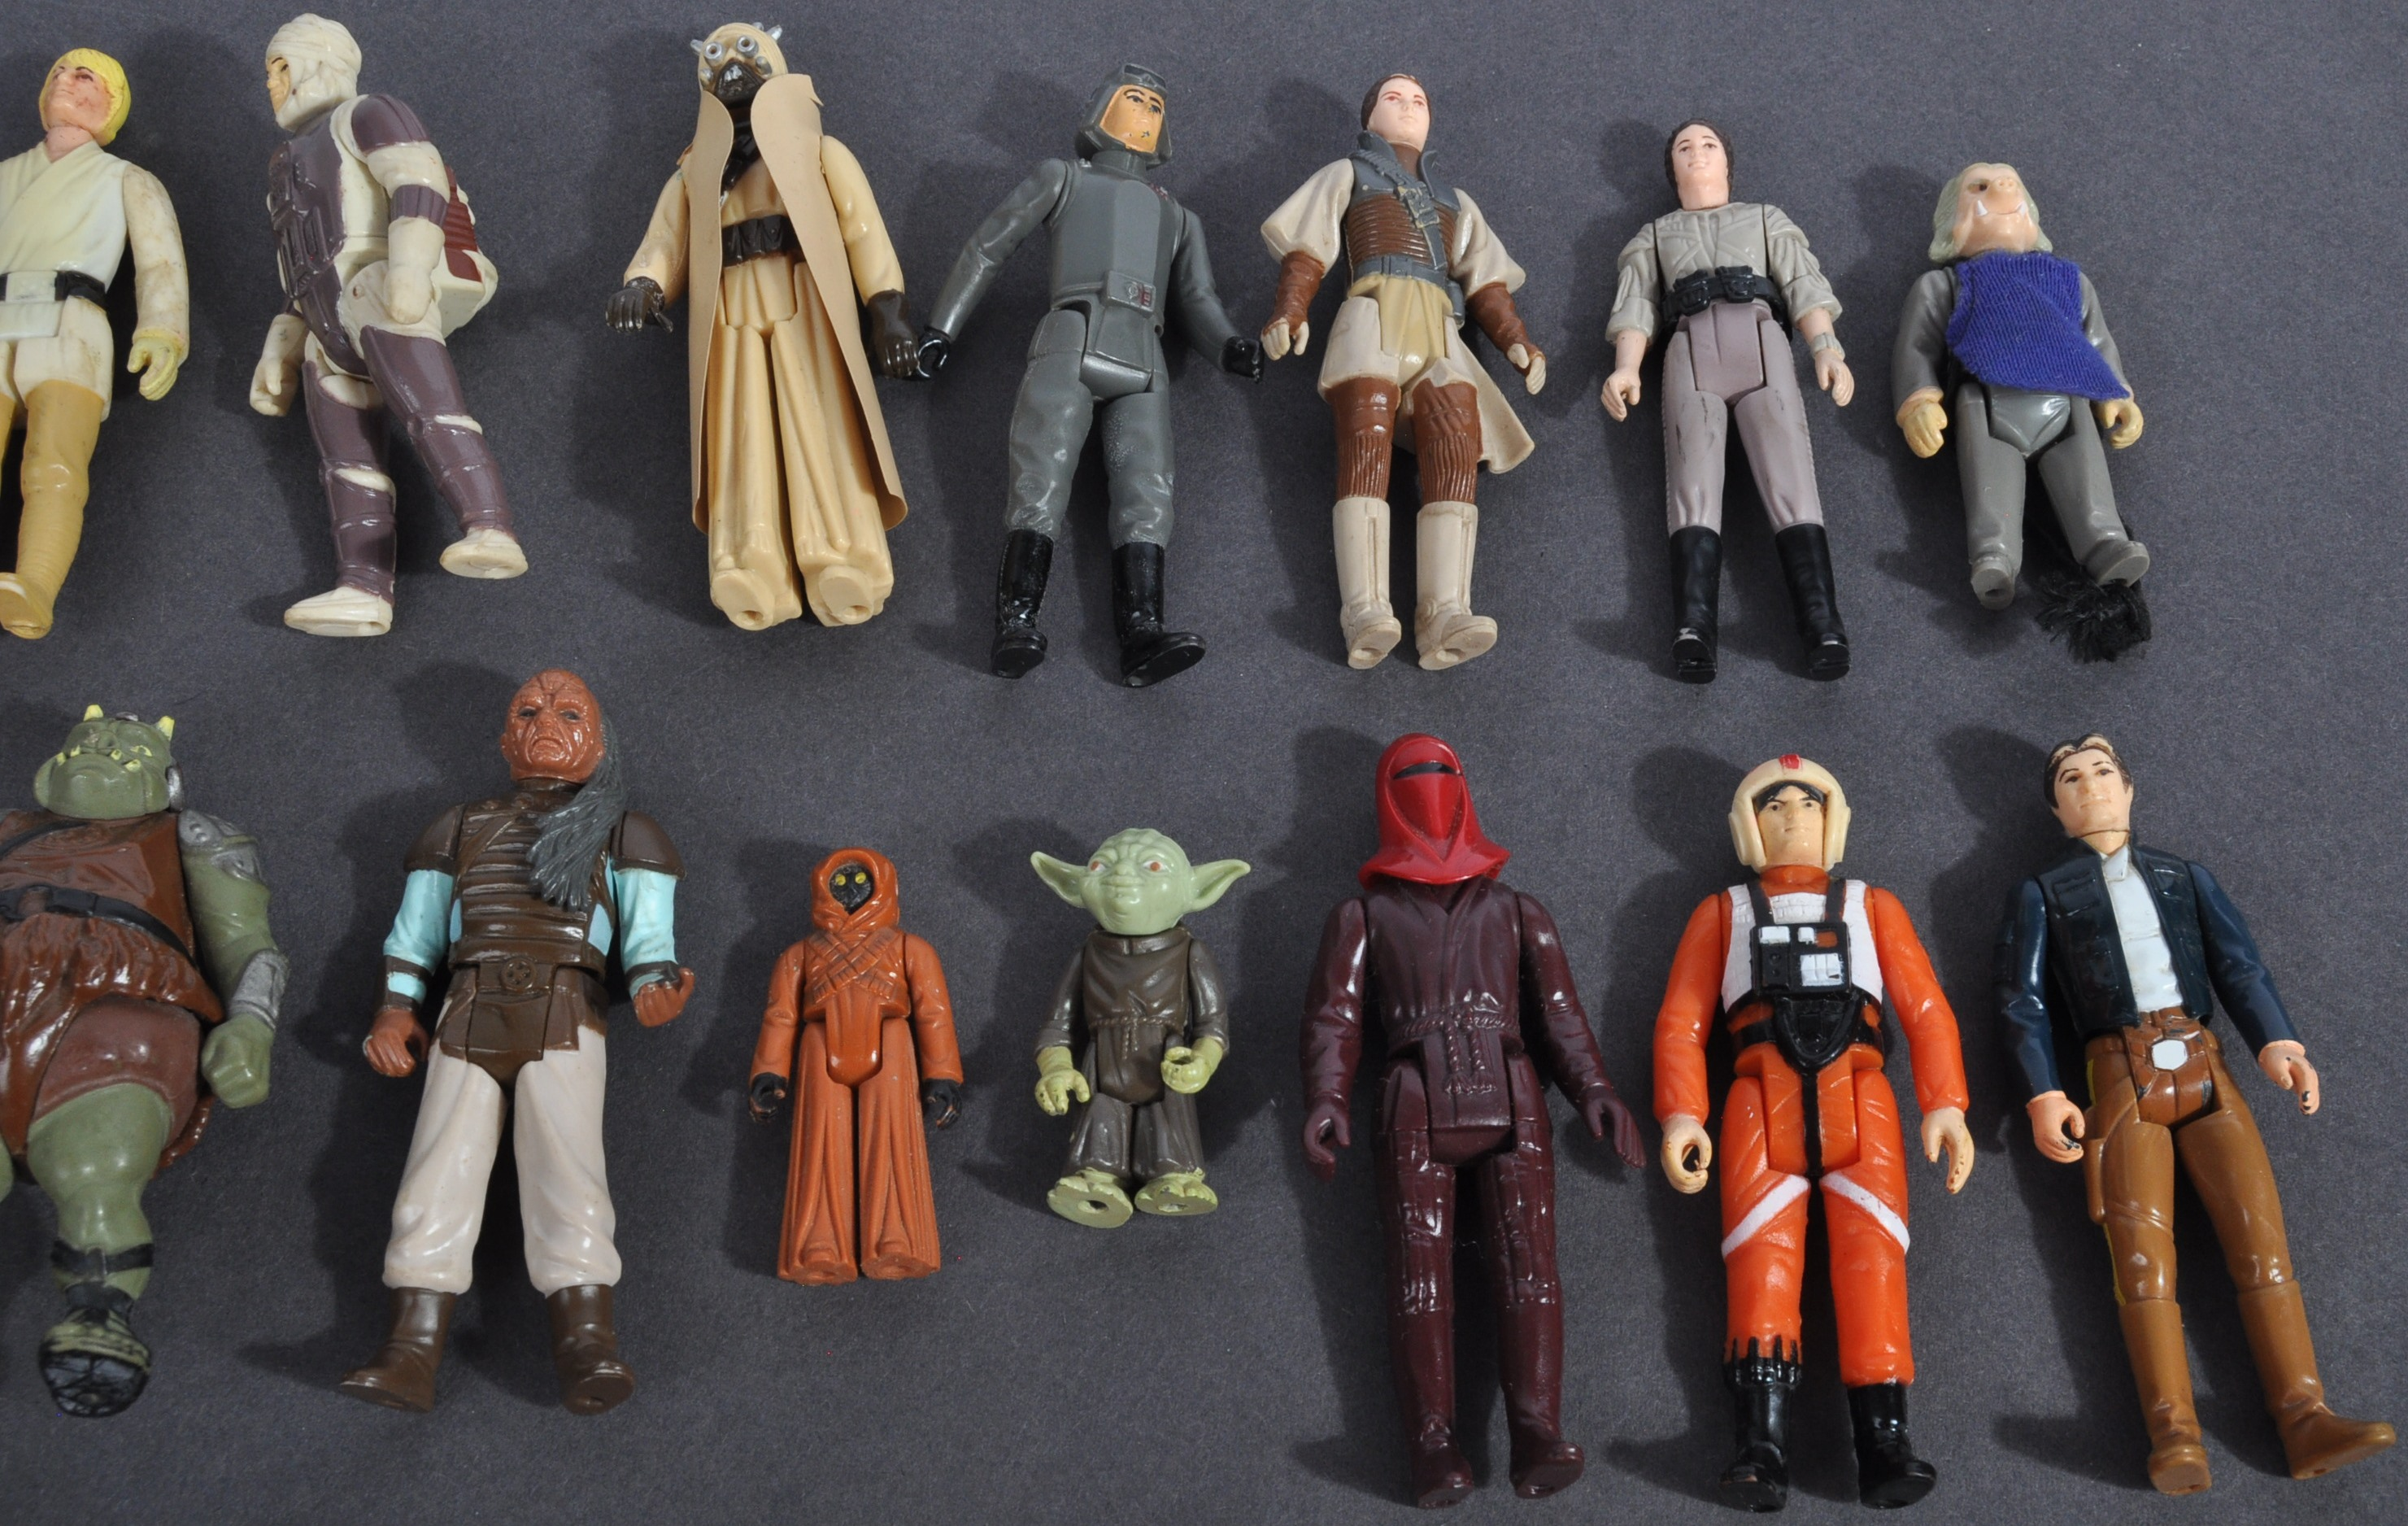 STAR WARS - COLLECTION OF VINTAGE KENNER / PALITOY ACTION FIGURES - Image 4 of 7